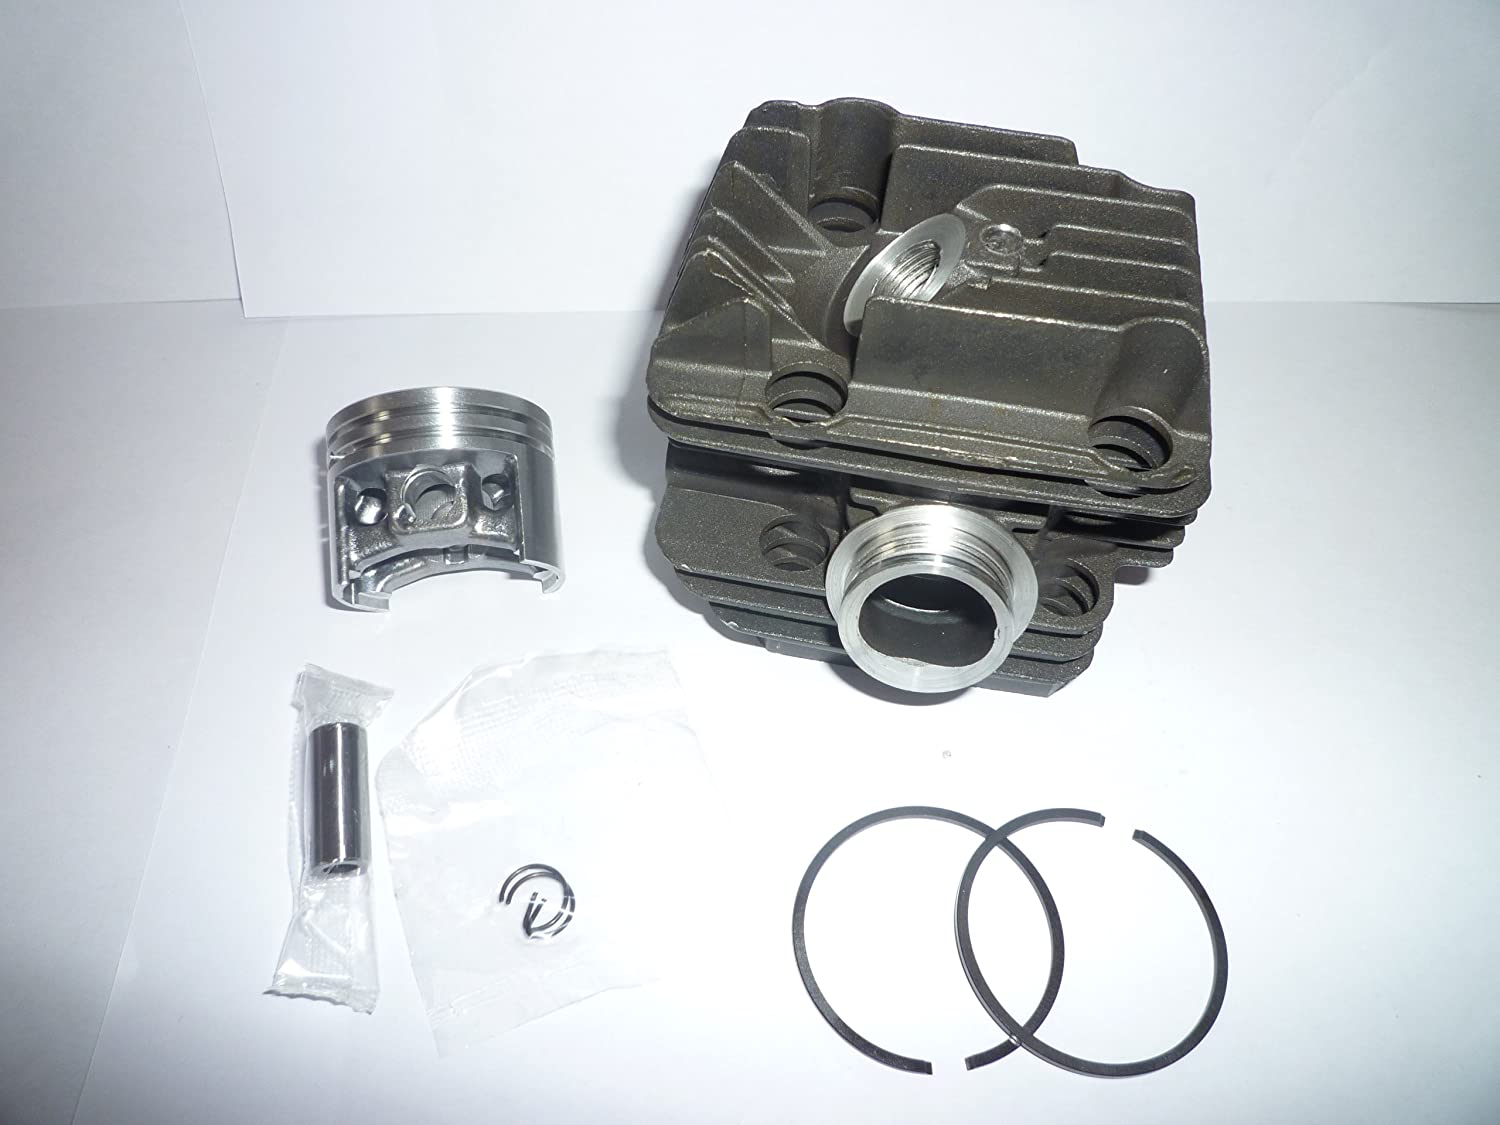 Cylinder & Piston 40mm for Stihl MS200T non genuine parts